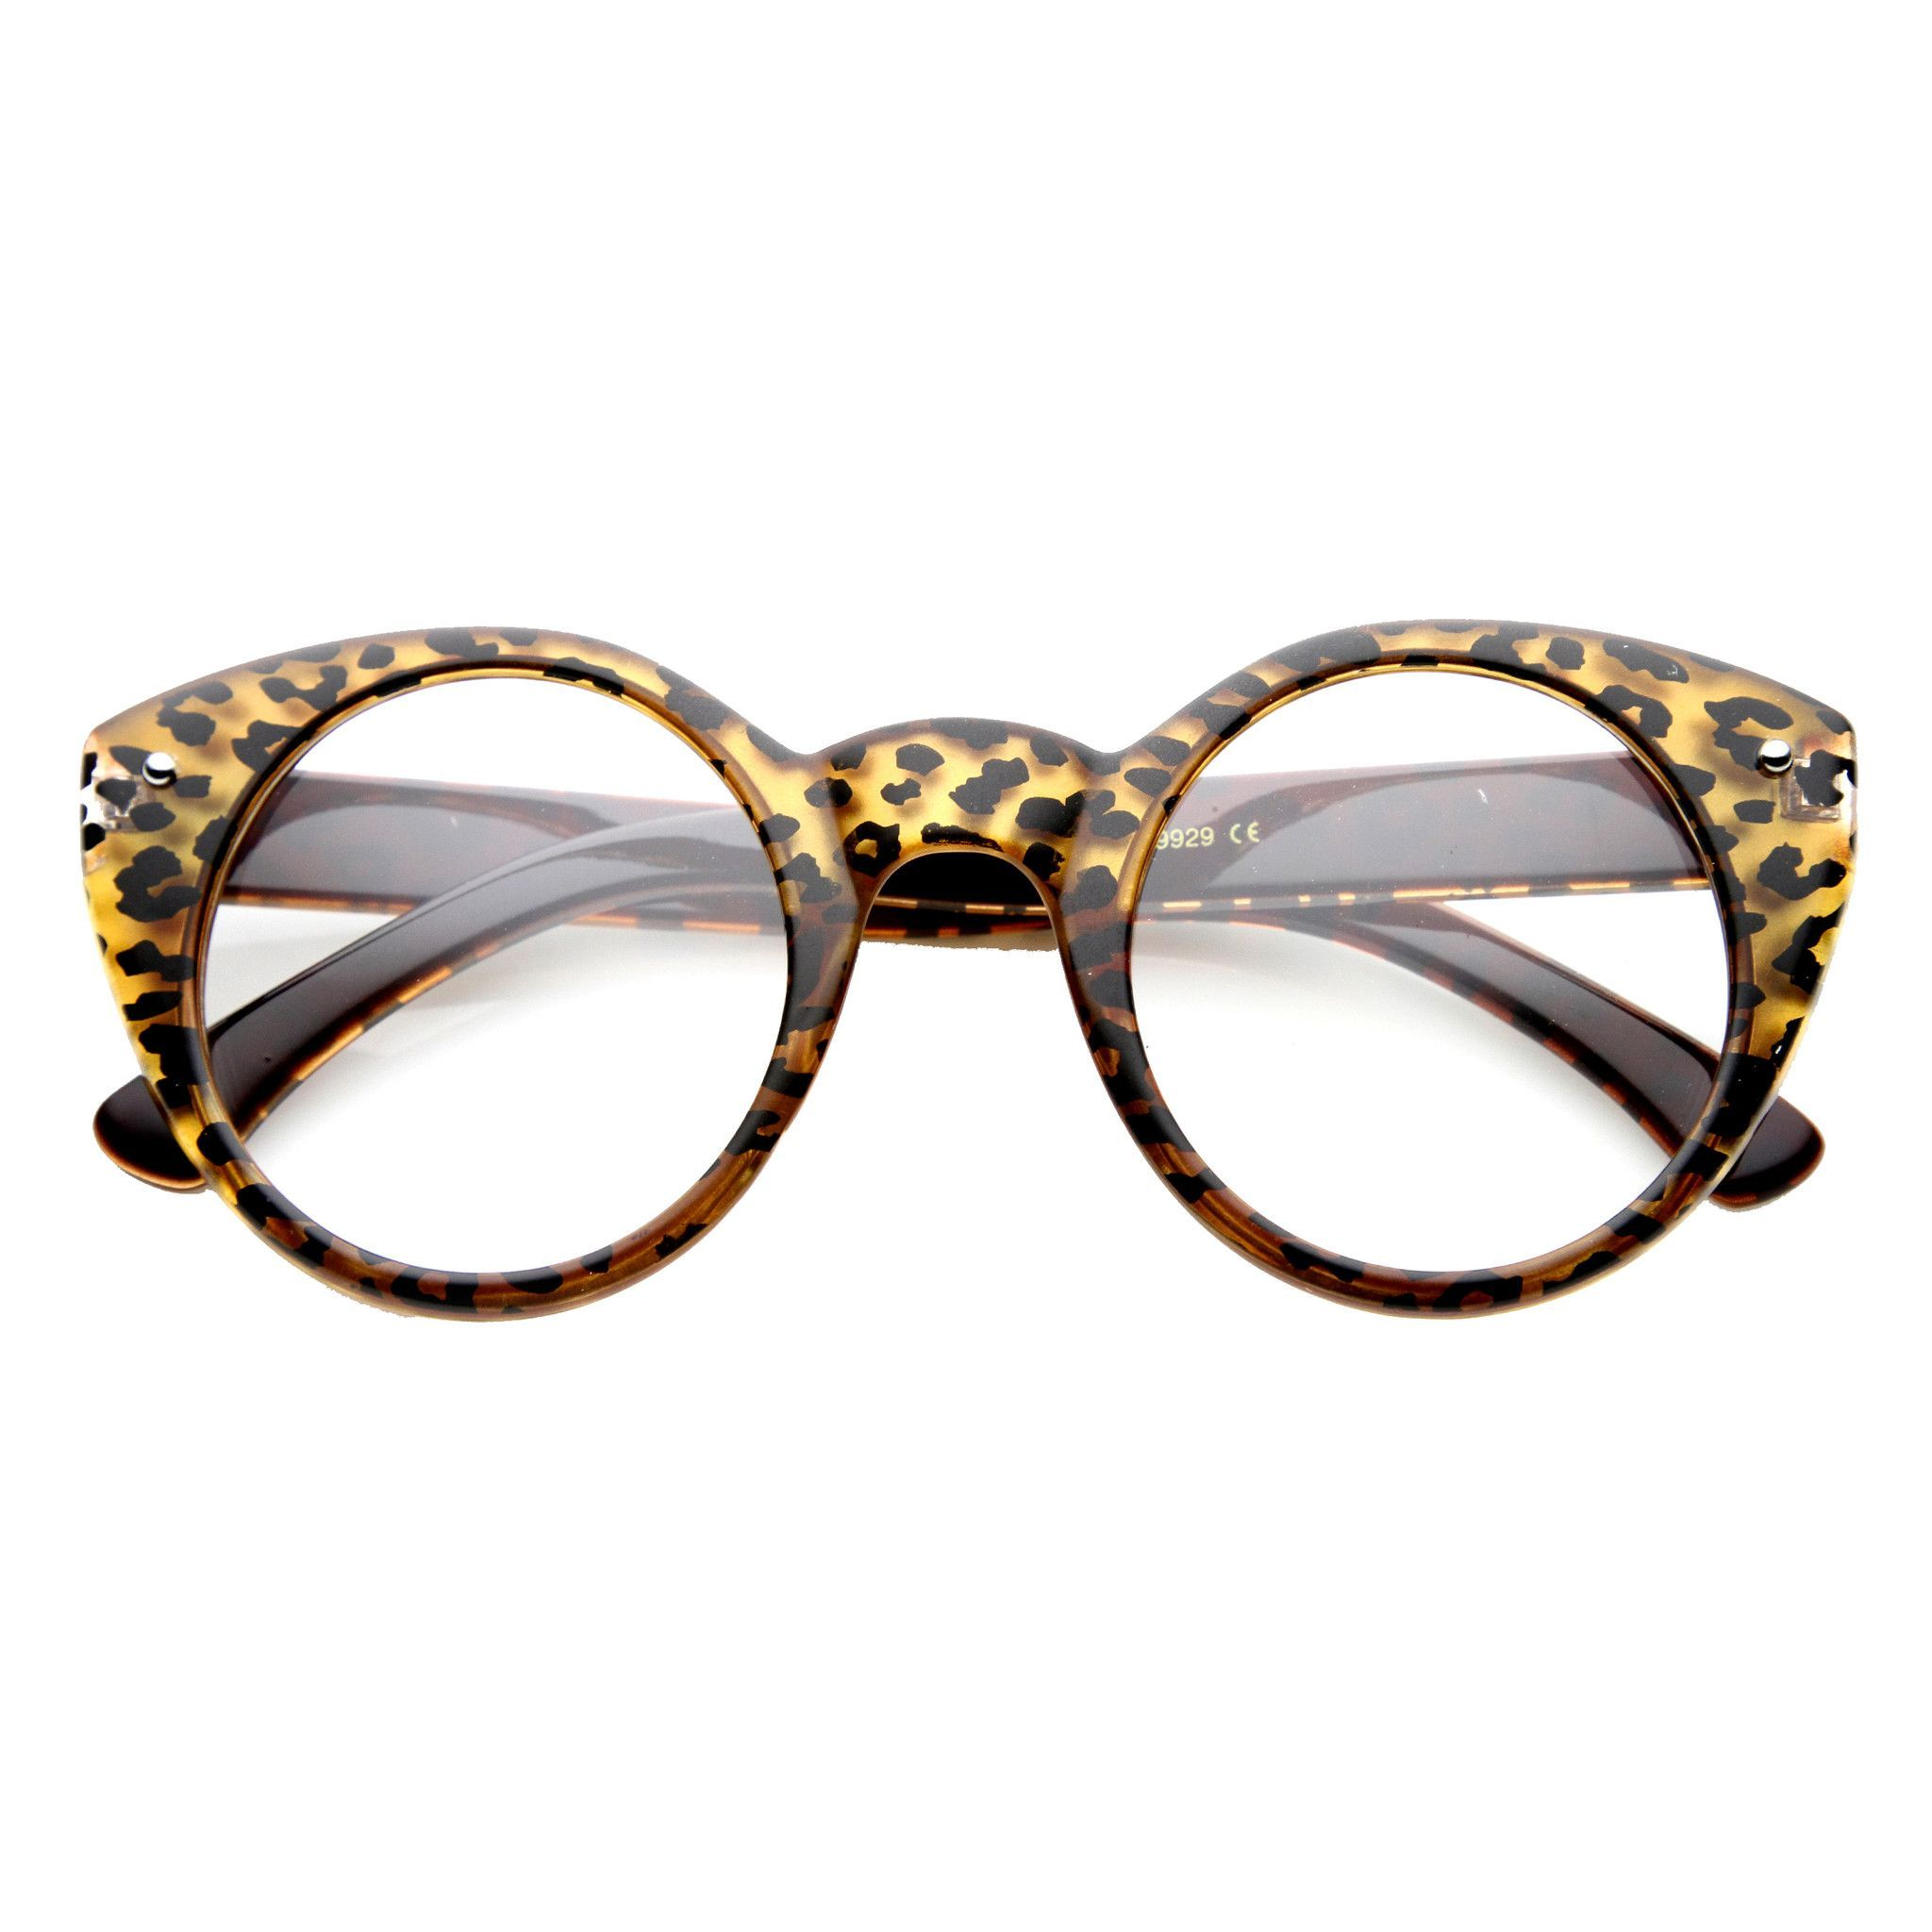 - Description - Measurements - Shipping - A distinct bold version of 50s-inspired cat eye glasses with high pointed corners features stylish and colorful animal print patterns. You'll find they can wo